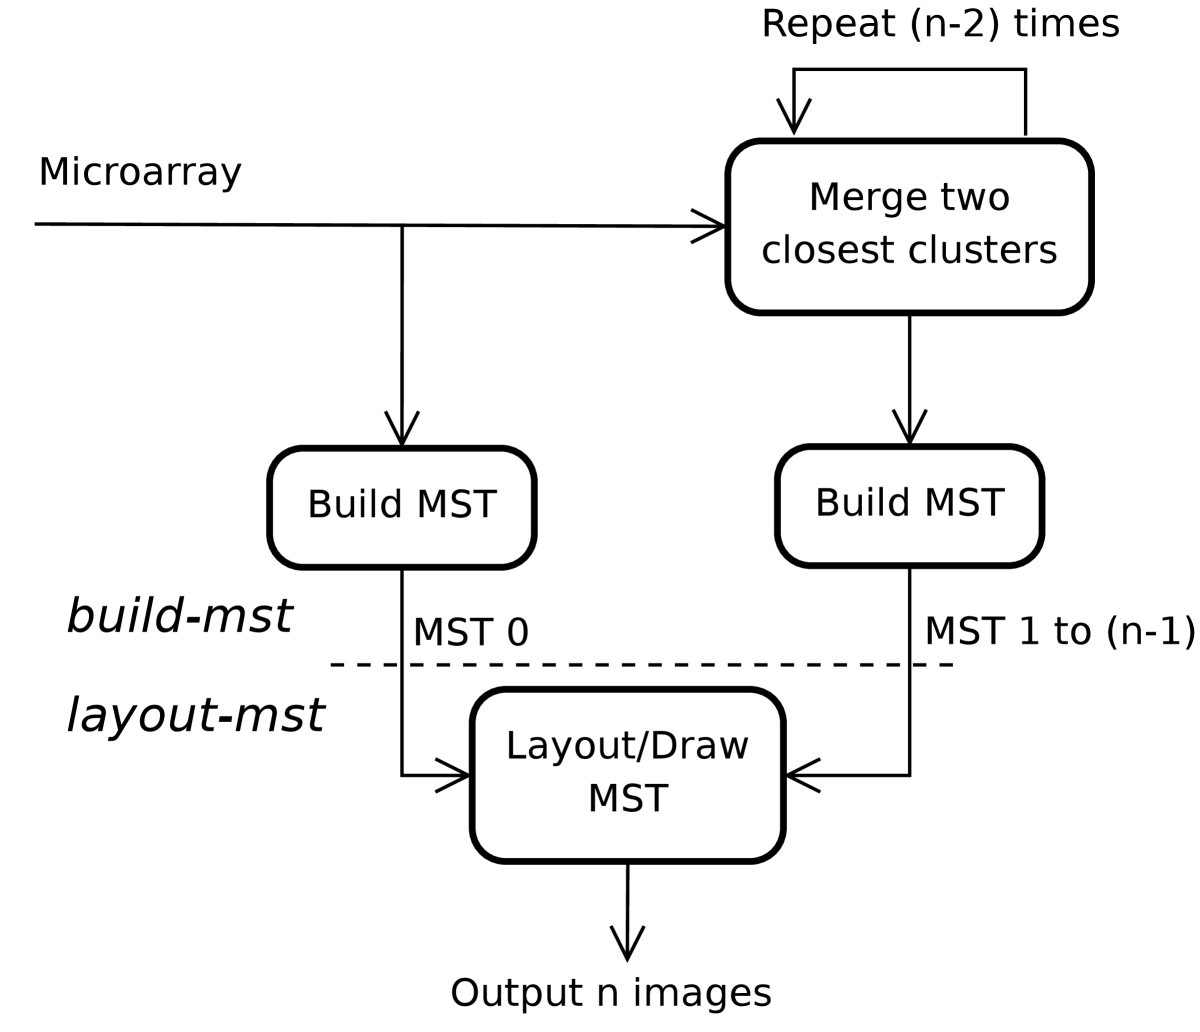 https://static-content.springer.com/image/art%3A10.1186%2F1751-0473-4-8/MediaObjects/13029_2009_Article_42_Fig6_HTML.jpg